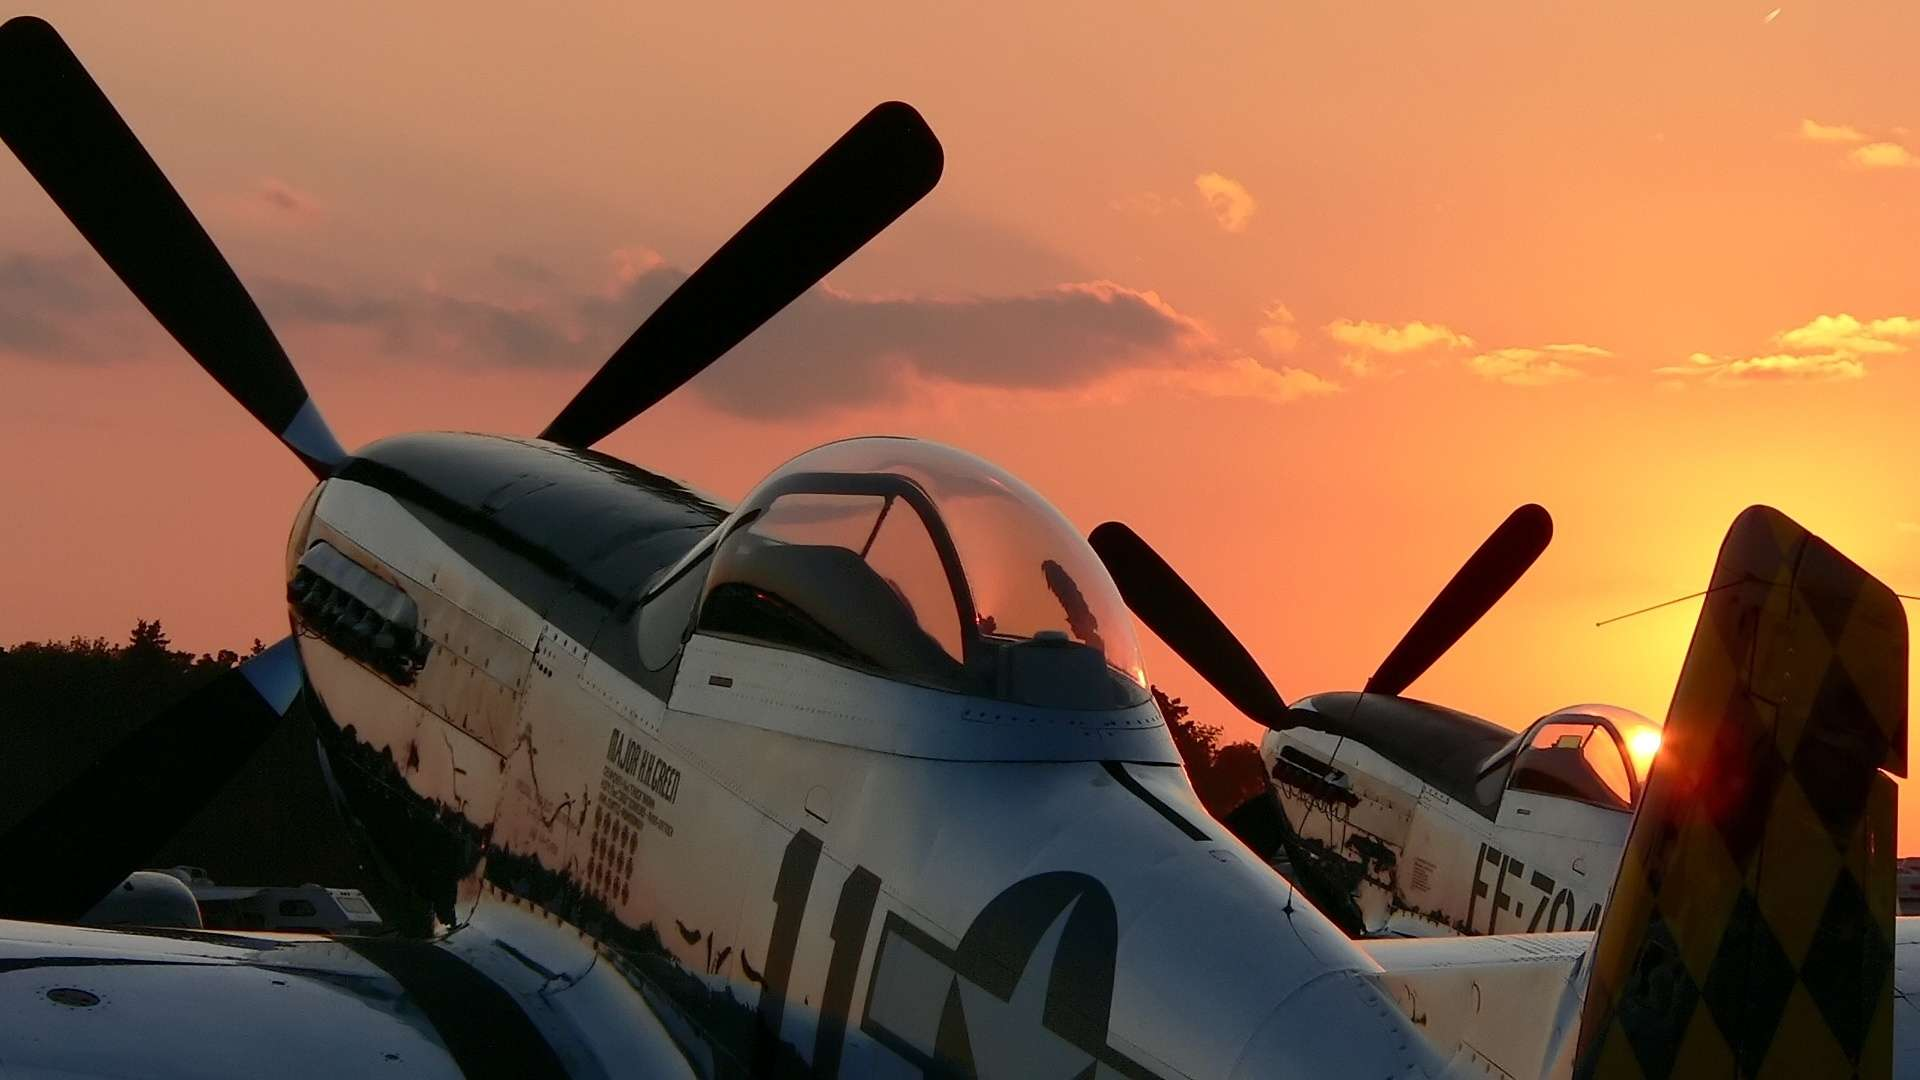 Download the New Gallery of P 51 Mustang Hd Wallpapers and images 1920x1080